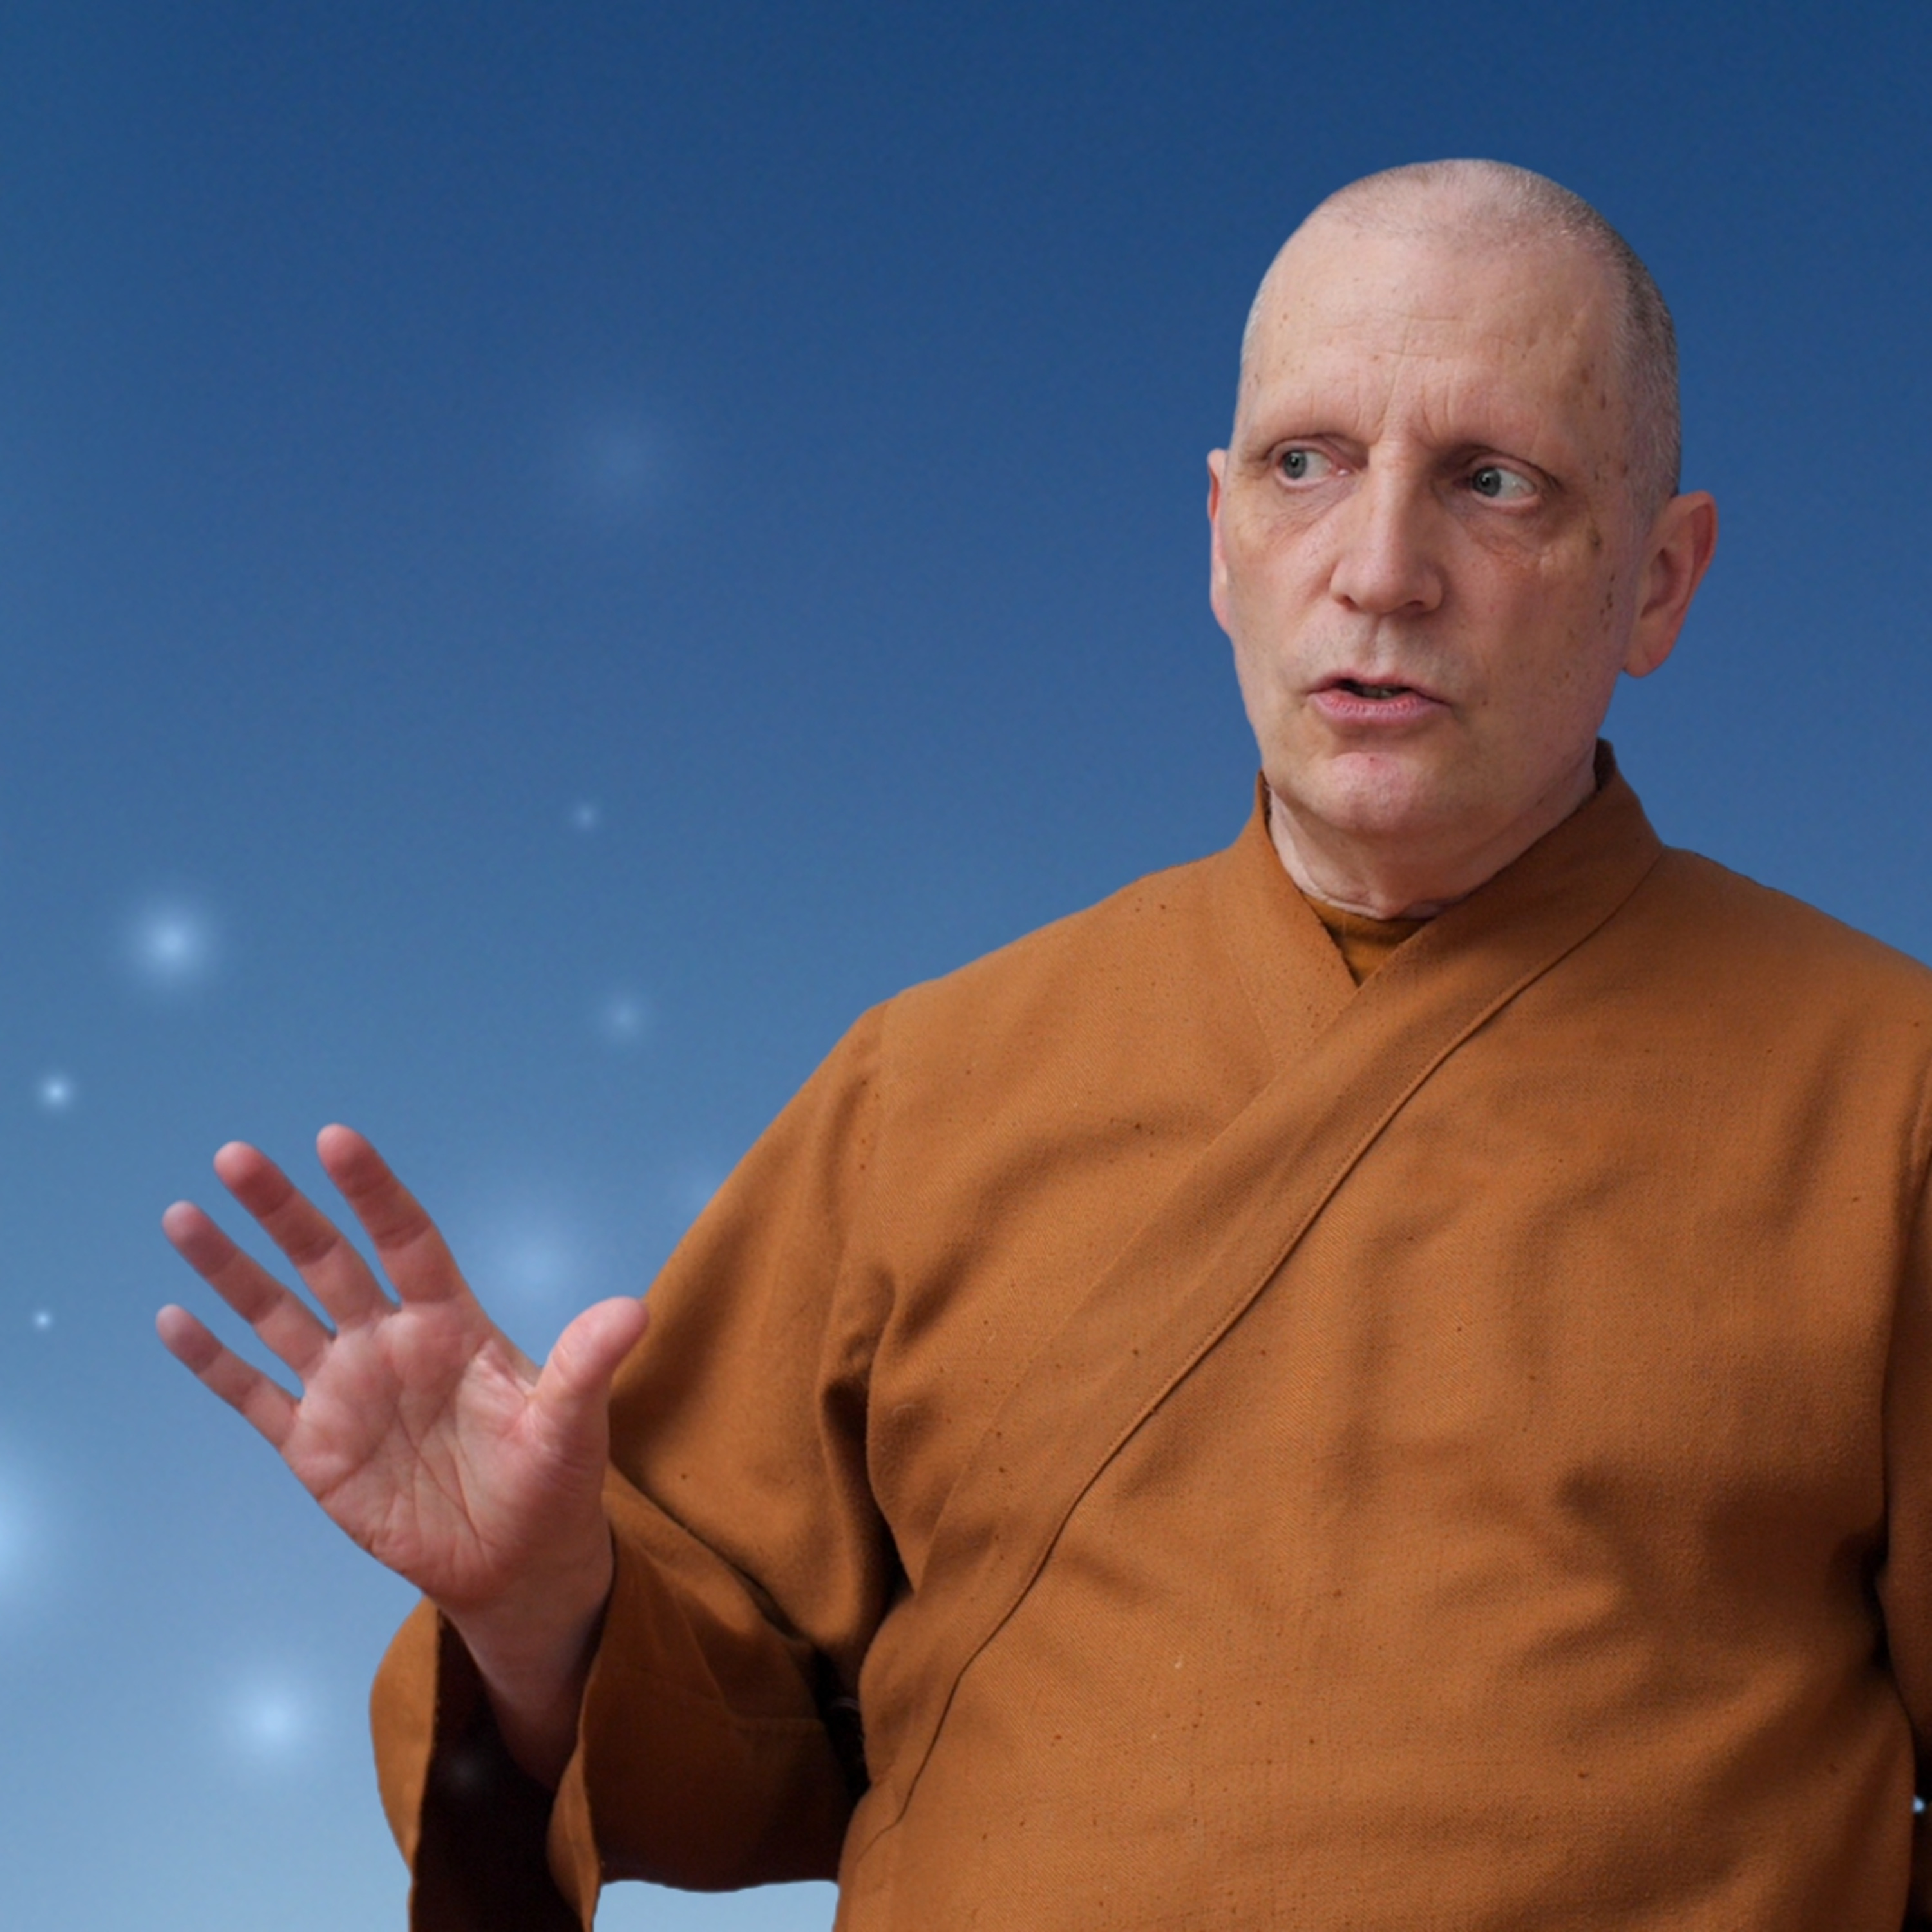 The Noble Eightfold Path (4) - Right Action